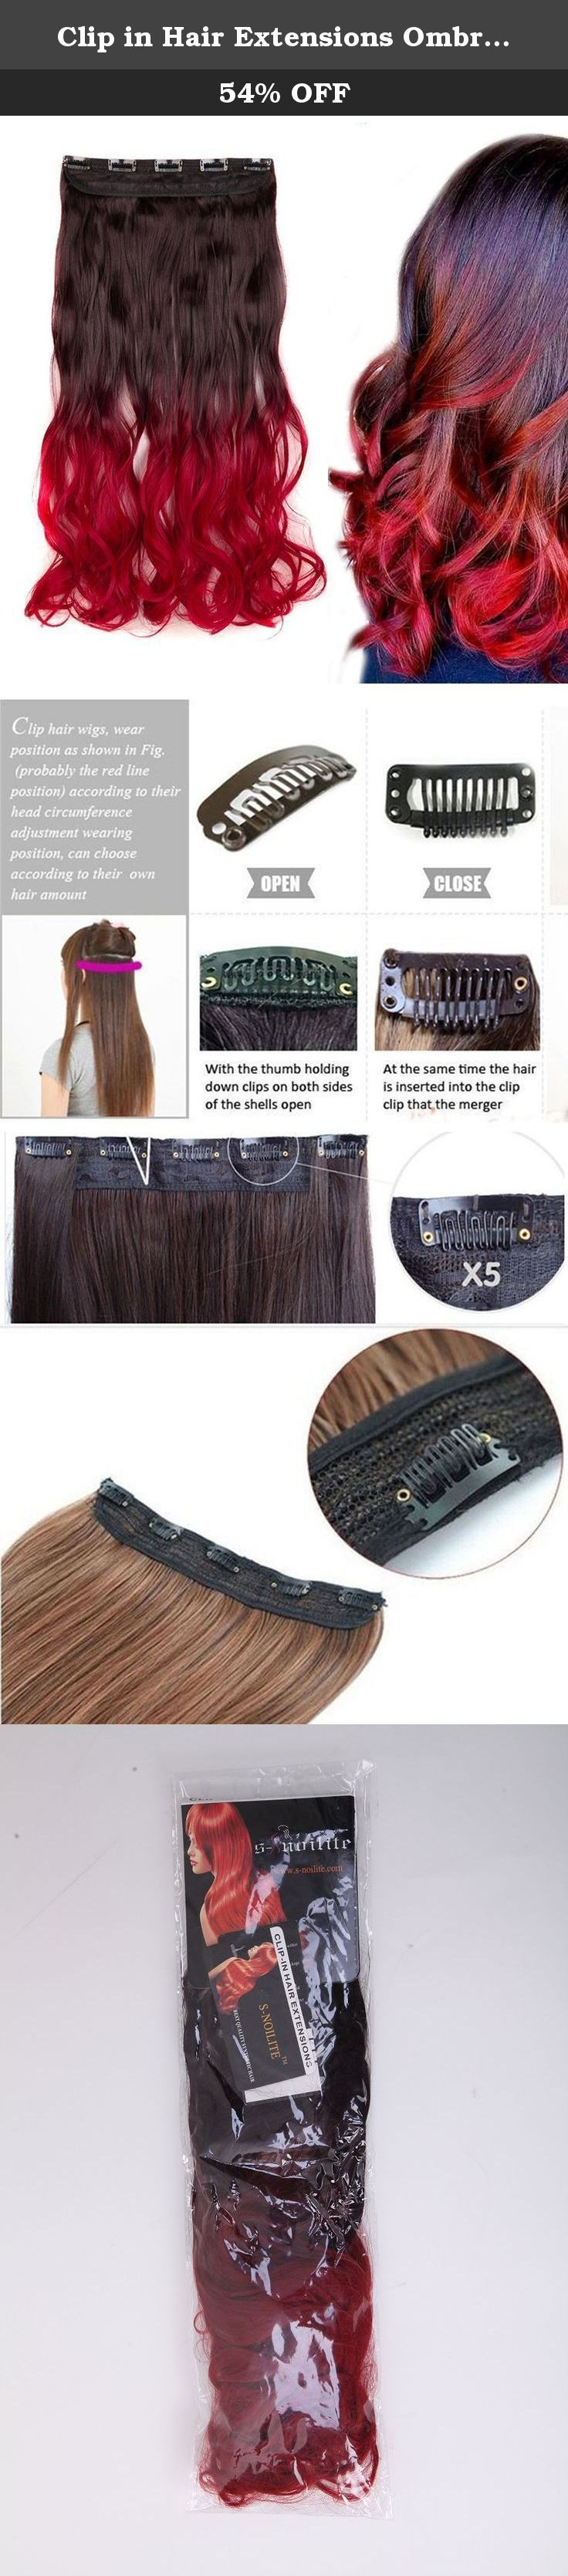 Clip in Hair Extensions Ombre Dip Dye Color Synthetic Hairpiece 2 Tone Japanese Kanekalon Fiber Full Head Thick Long Curly Wavy 1pcs 5clips for Women 23'' / 23 inch (Dark brown to Dark Red). Product information Materials: Kanekalon Fiber from Japan(also known as KK wire) Length: 23inch without stretching Suitable Occasions: daily use,Halloween,cosplay,club,concerts,costume,theme parties,bachelorette party,weddings,dating,conventions,masquerades,prom,evening out,carnival,April Fool's Day…